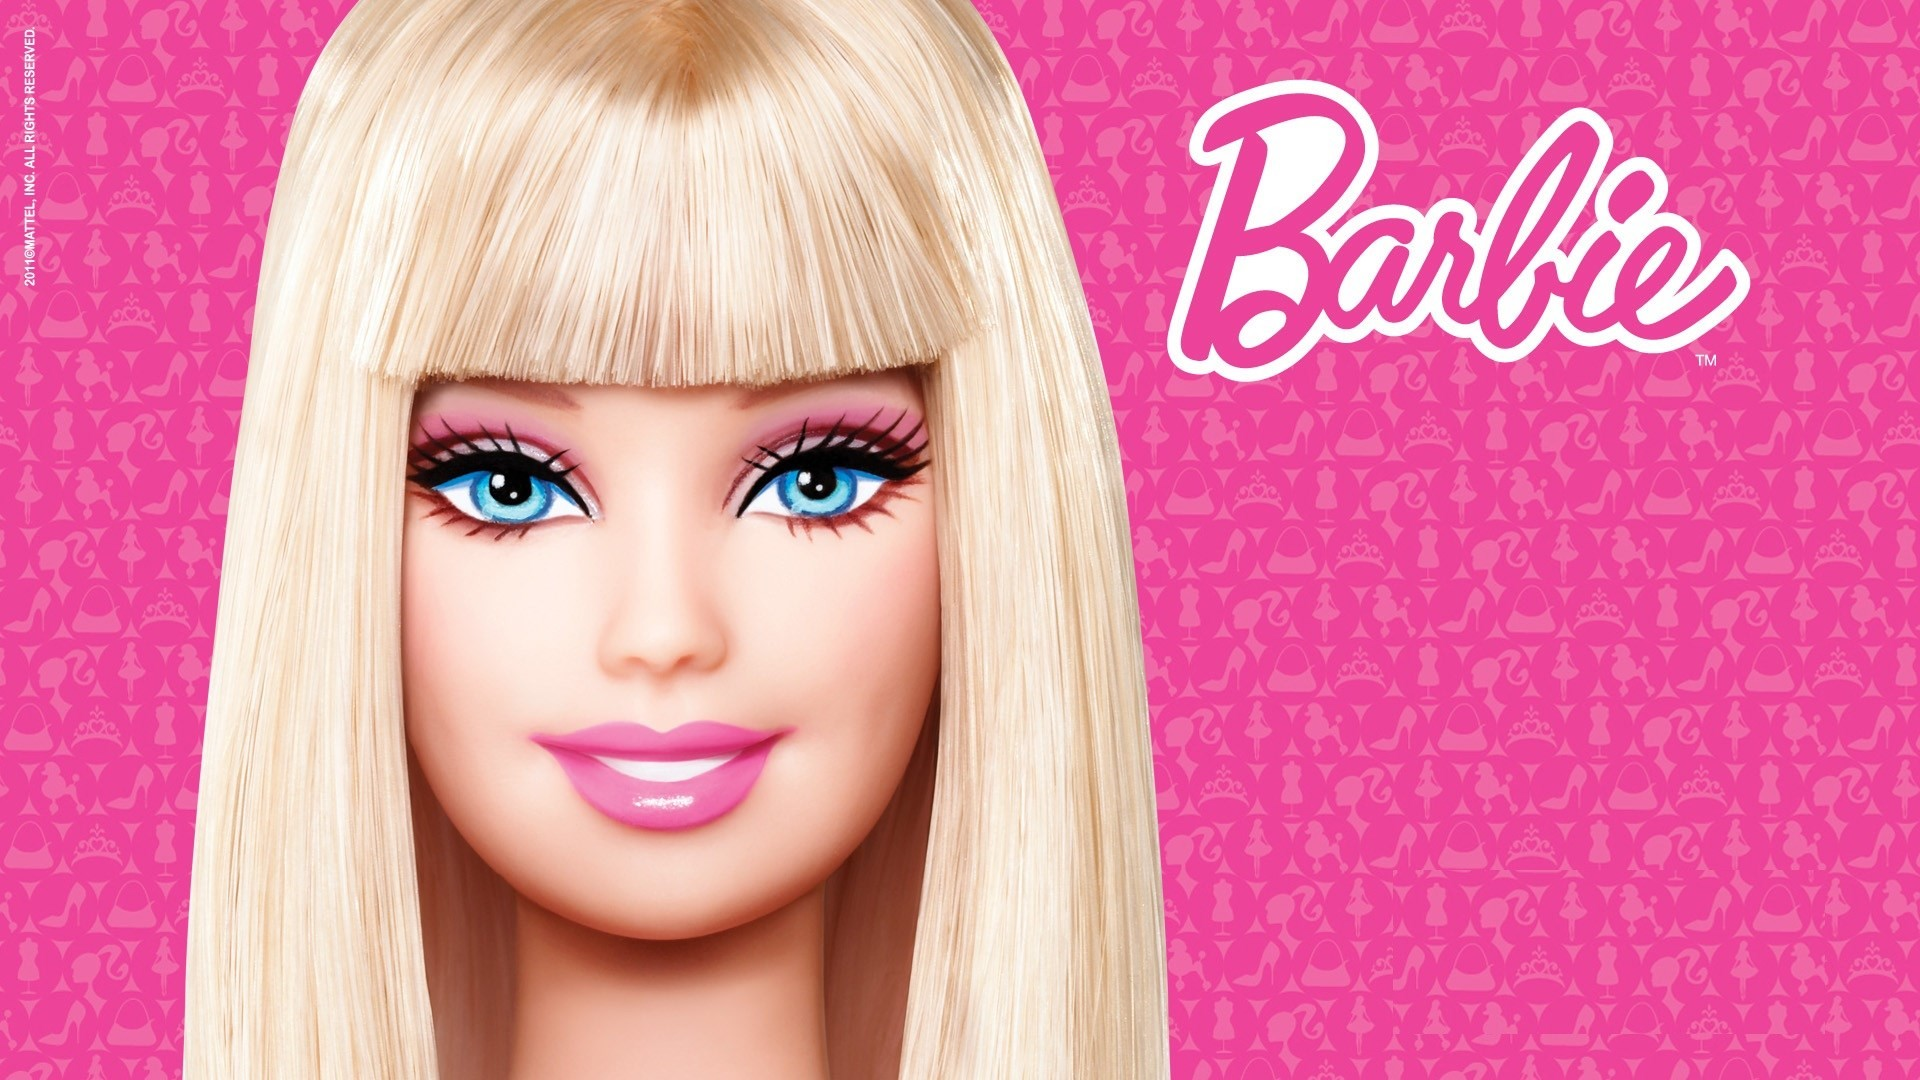 Barbie screensavers wallpapers 73 images - Barbie images for wallpaper ...